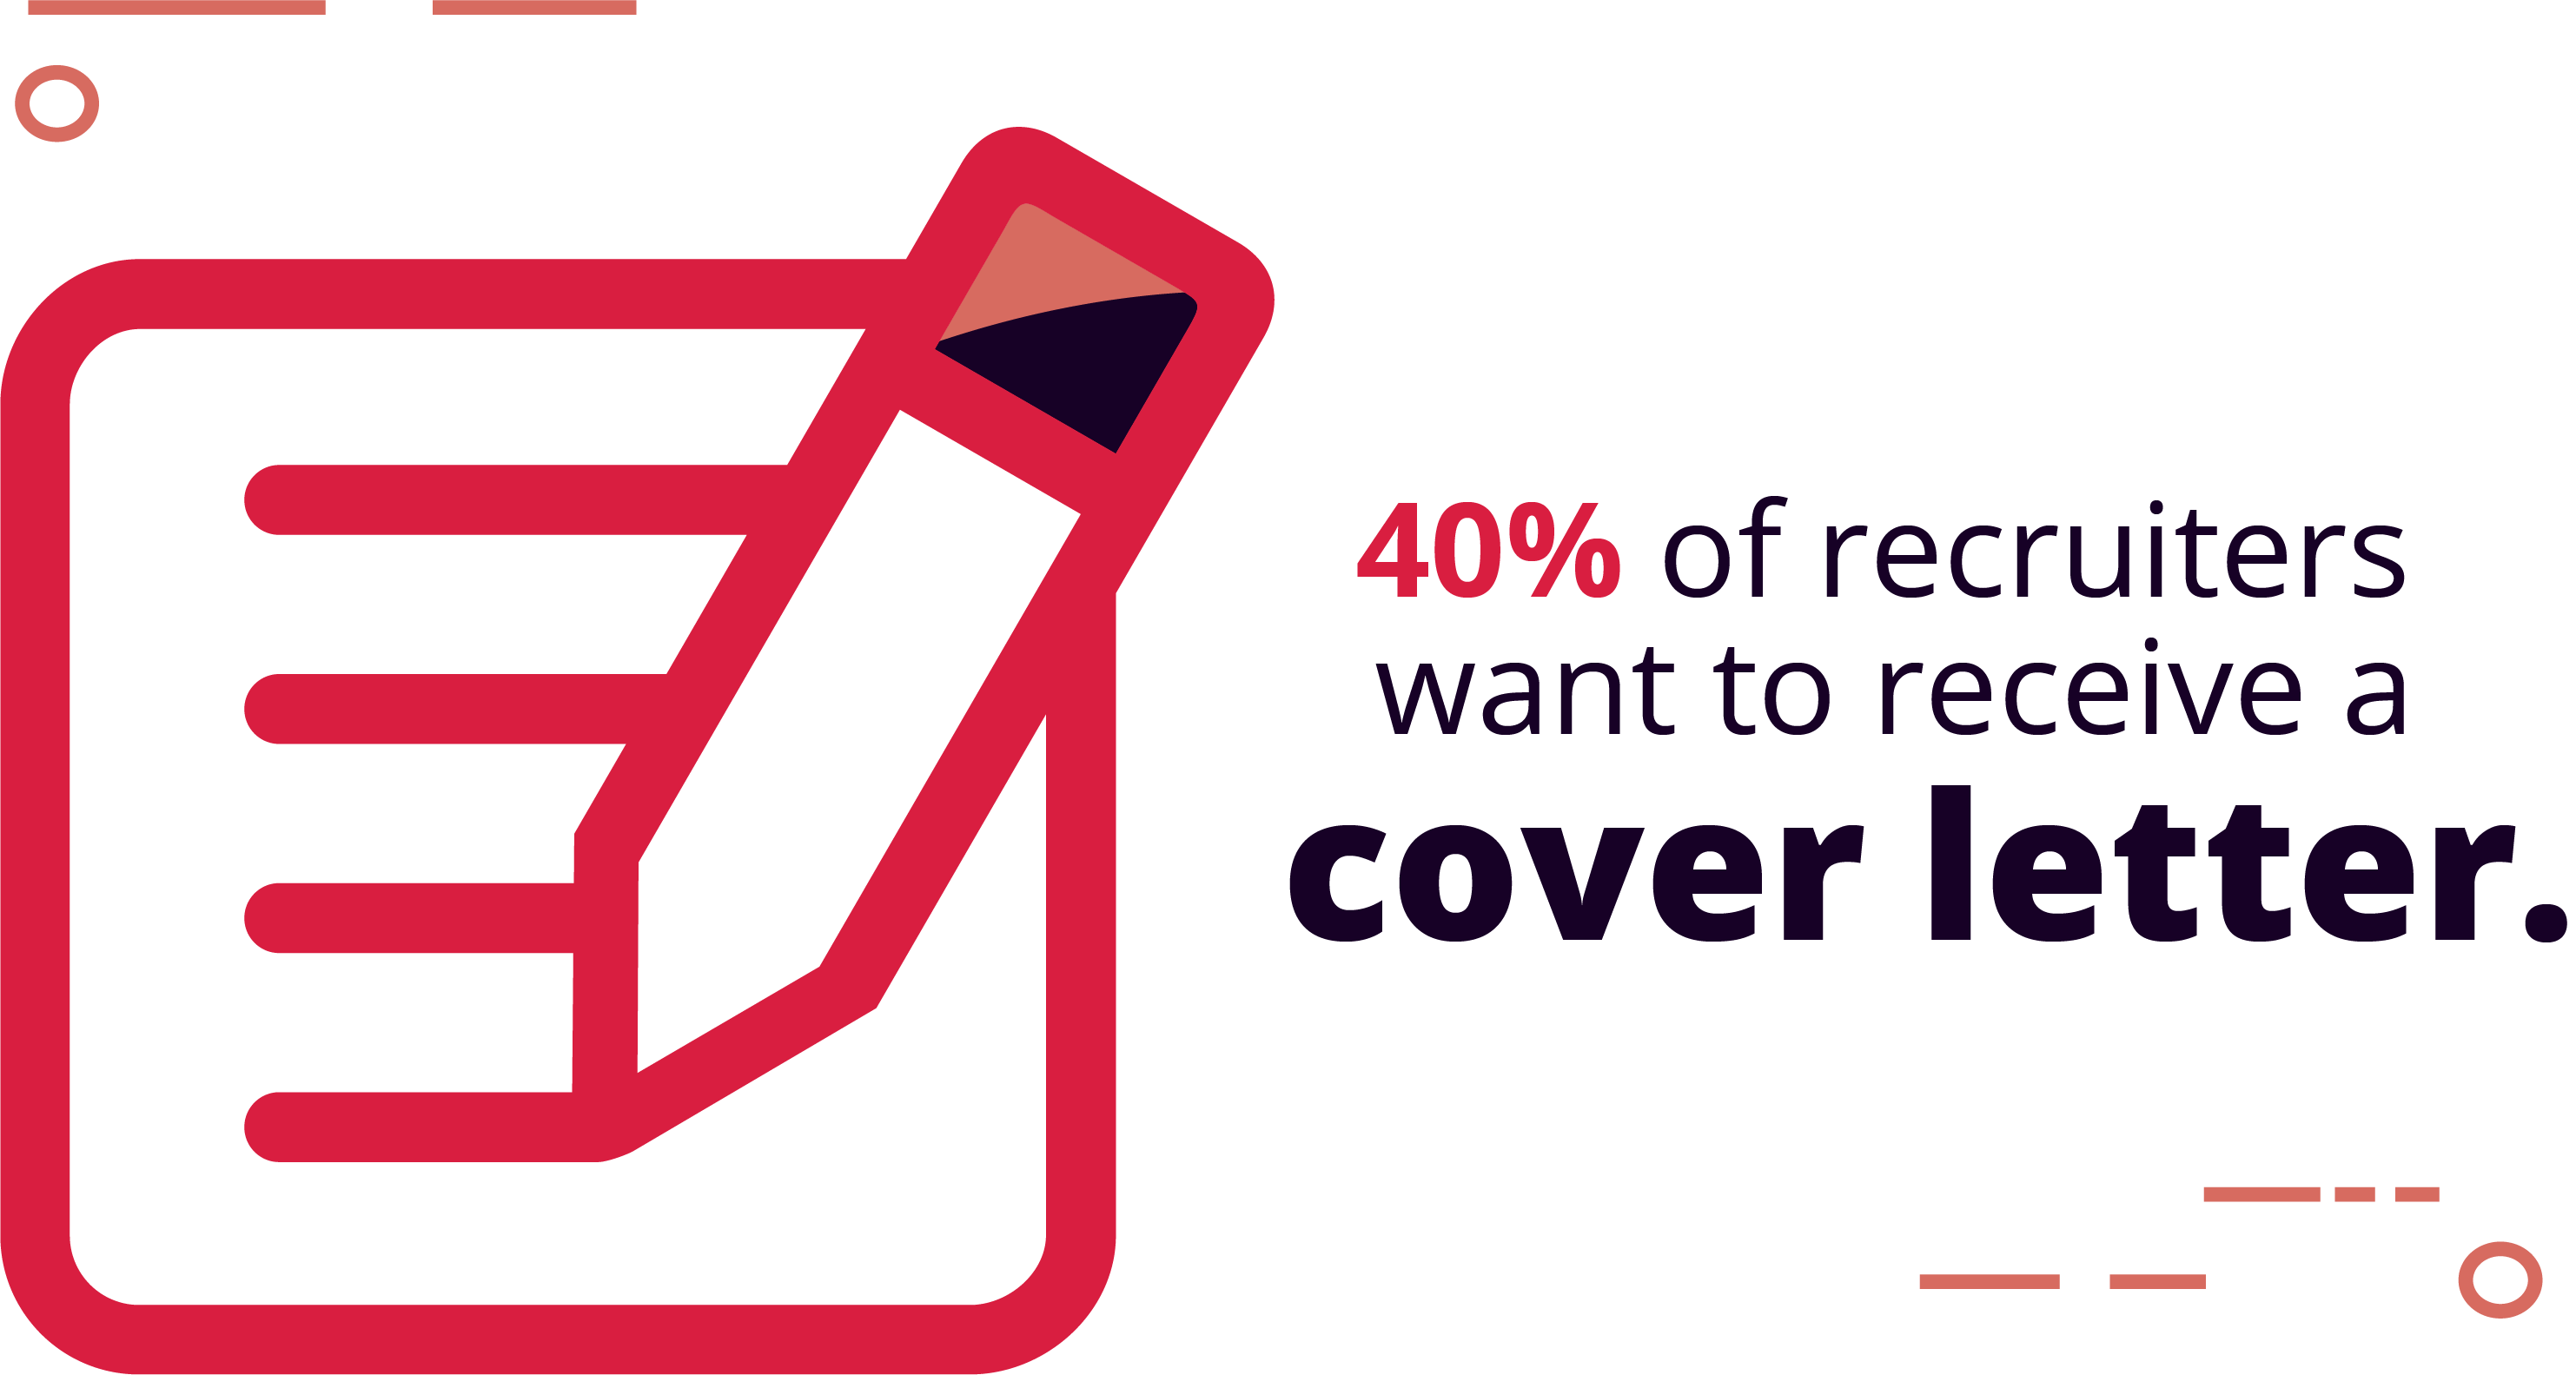 40% of Hiring Managers Want a Cover Letter